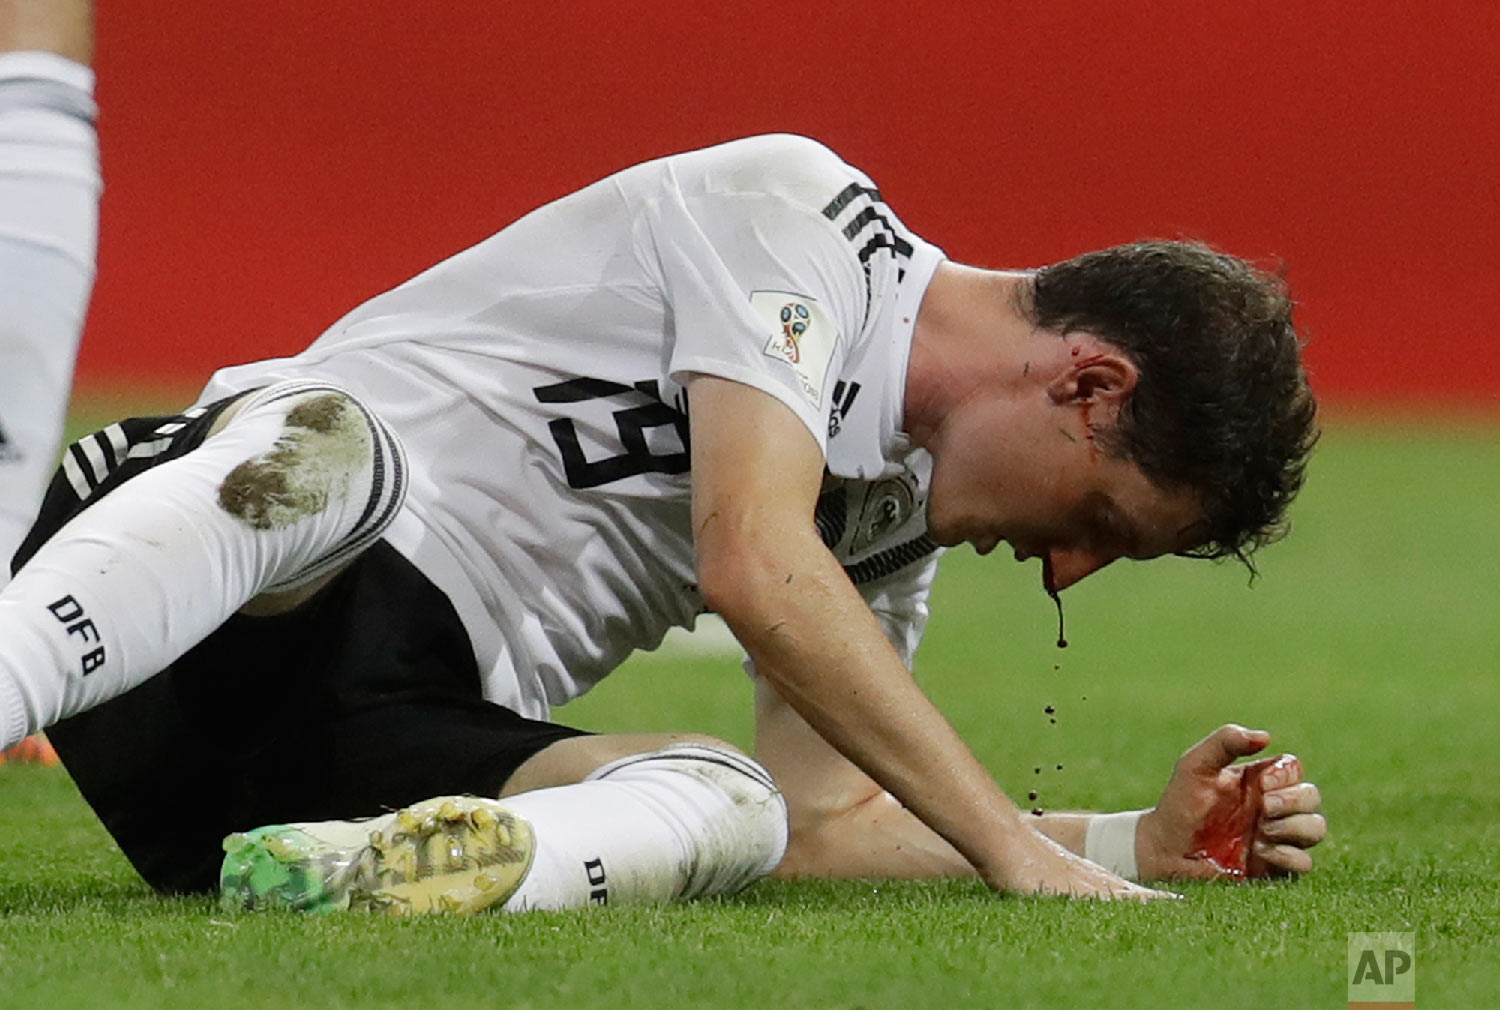 Blood drips from the nose of Germany's Sebastian Rudy during the group F match between Germany and Sweden at the 2018 soccer World Cup in the Fisht Stadium in Sochi, Russia, Saturday, June 23, 2018. (AP Photo/Michael Probst)